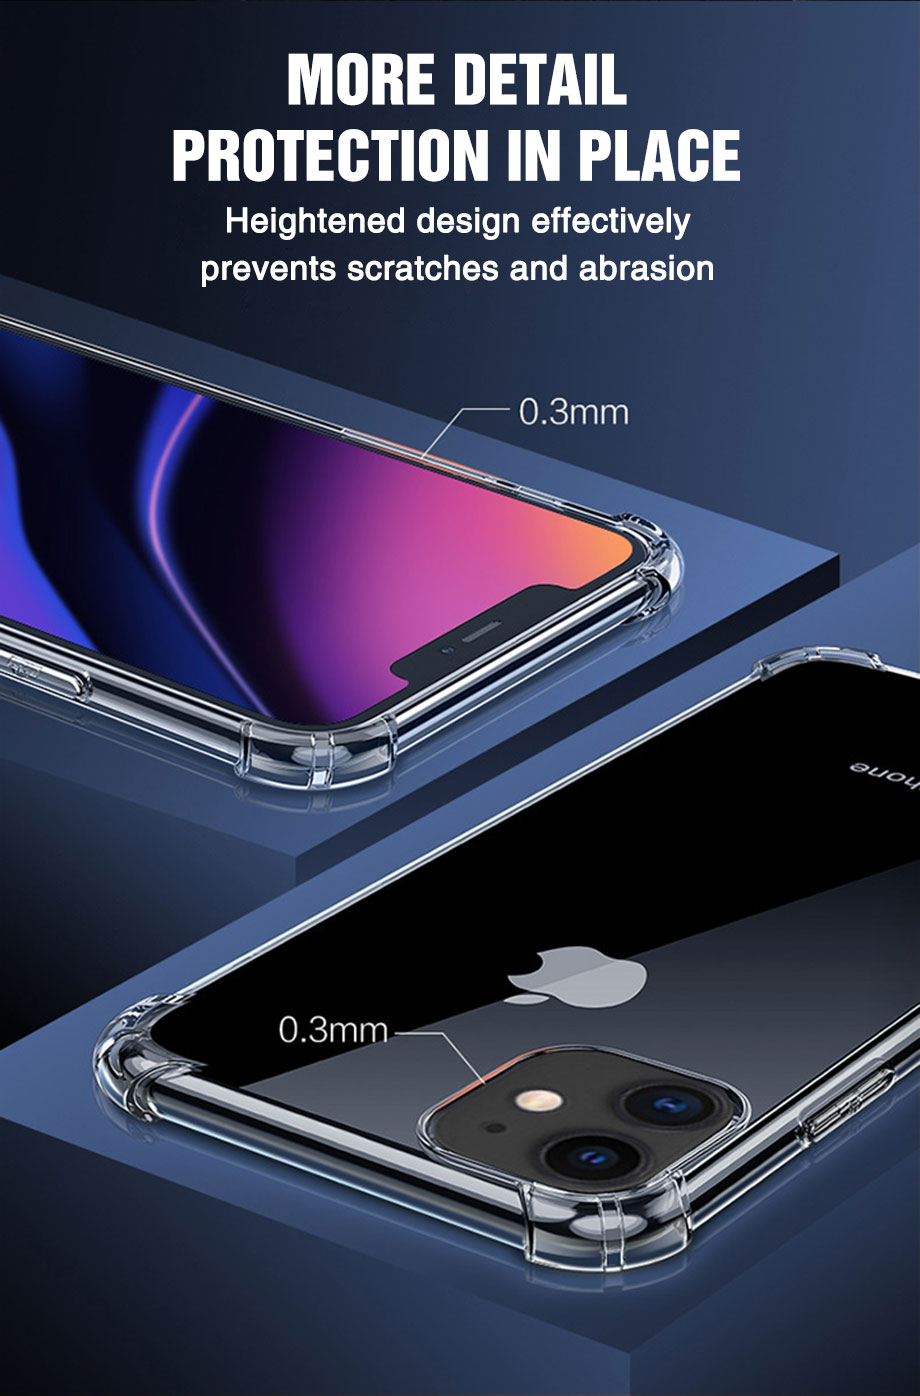 Transparent Shockproof Soft Silicone Case for iPhone 12 Pro Max2